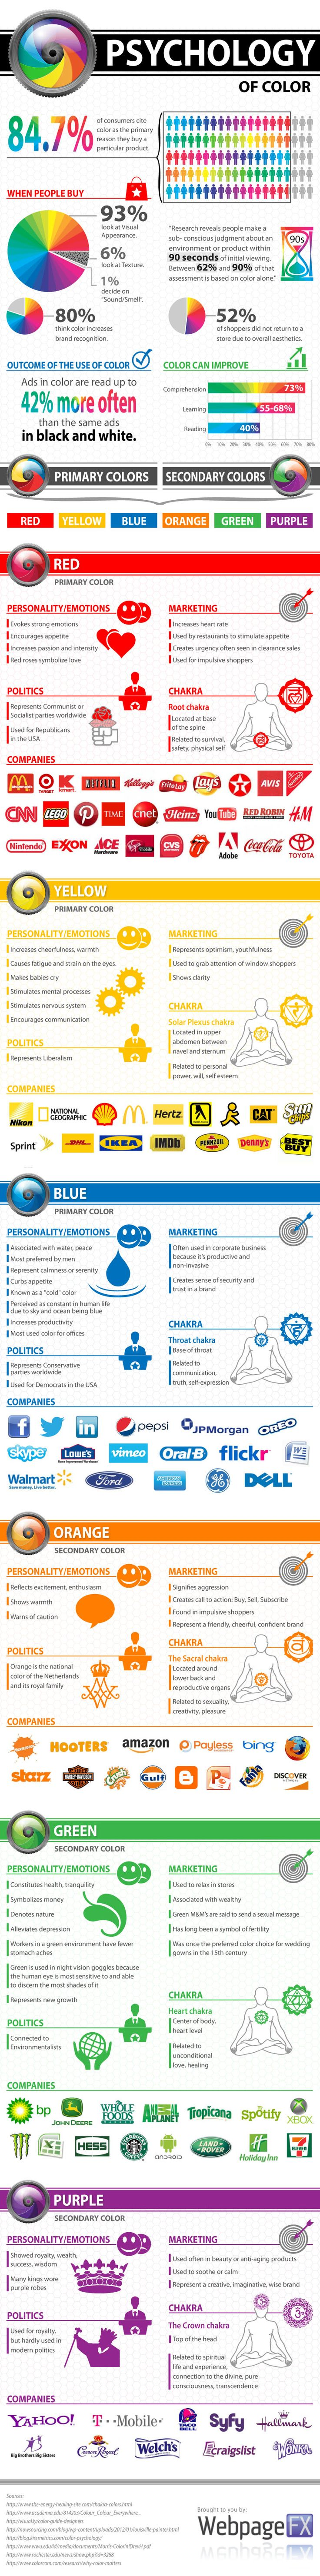 The Psychology of Color in Marketing